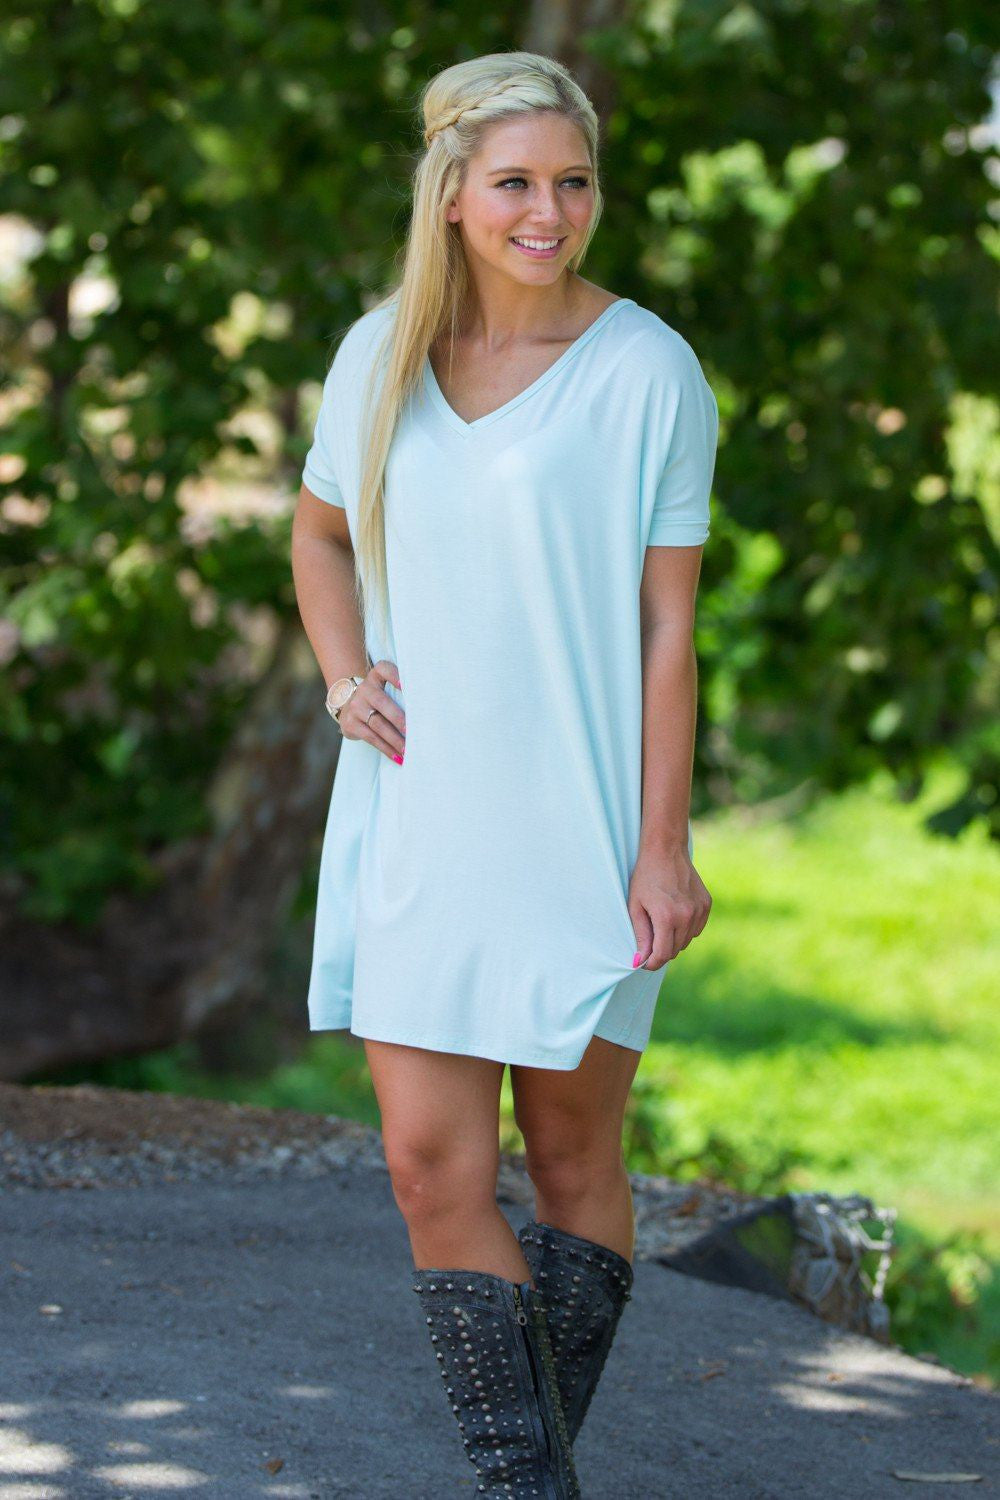 Short Sleeve V-Neck Piko Tunic - Mint - Piko Clothing - 1